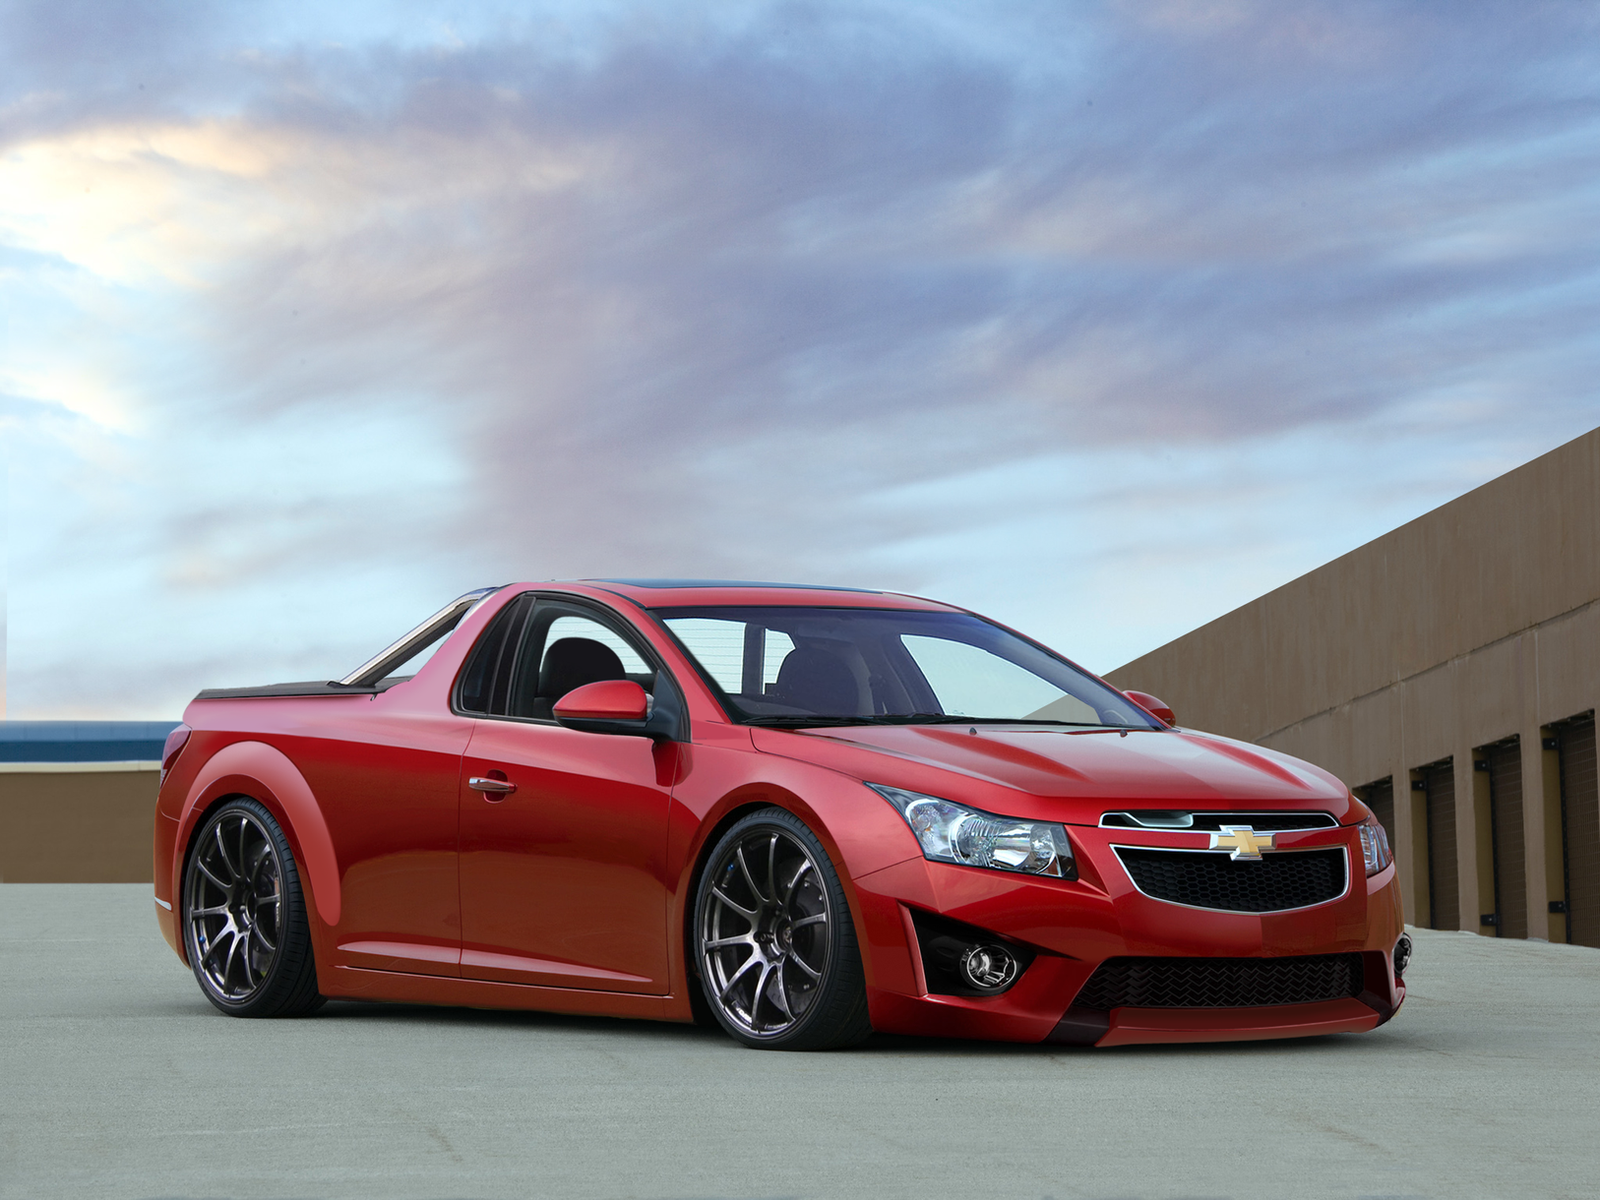 Chevrolet Cruze Ute By Degraafm On Deviantart